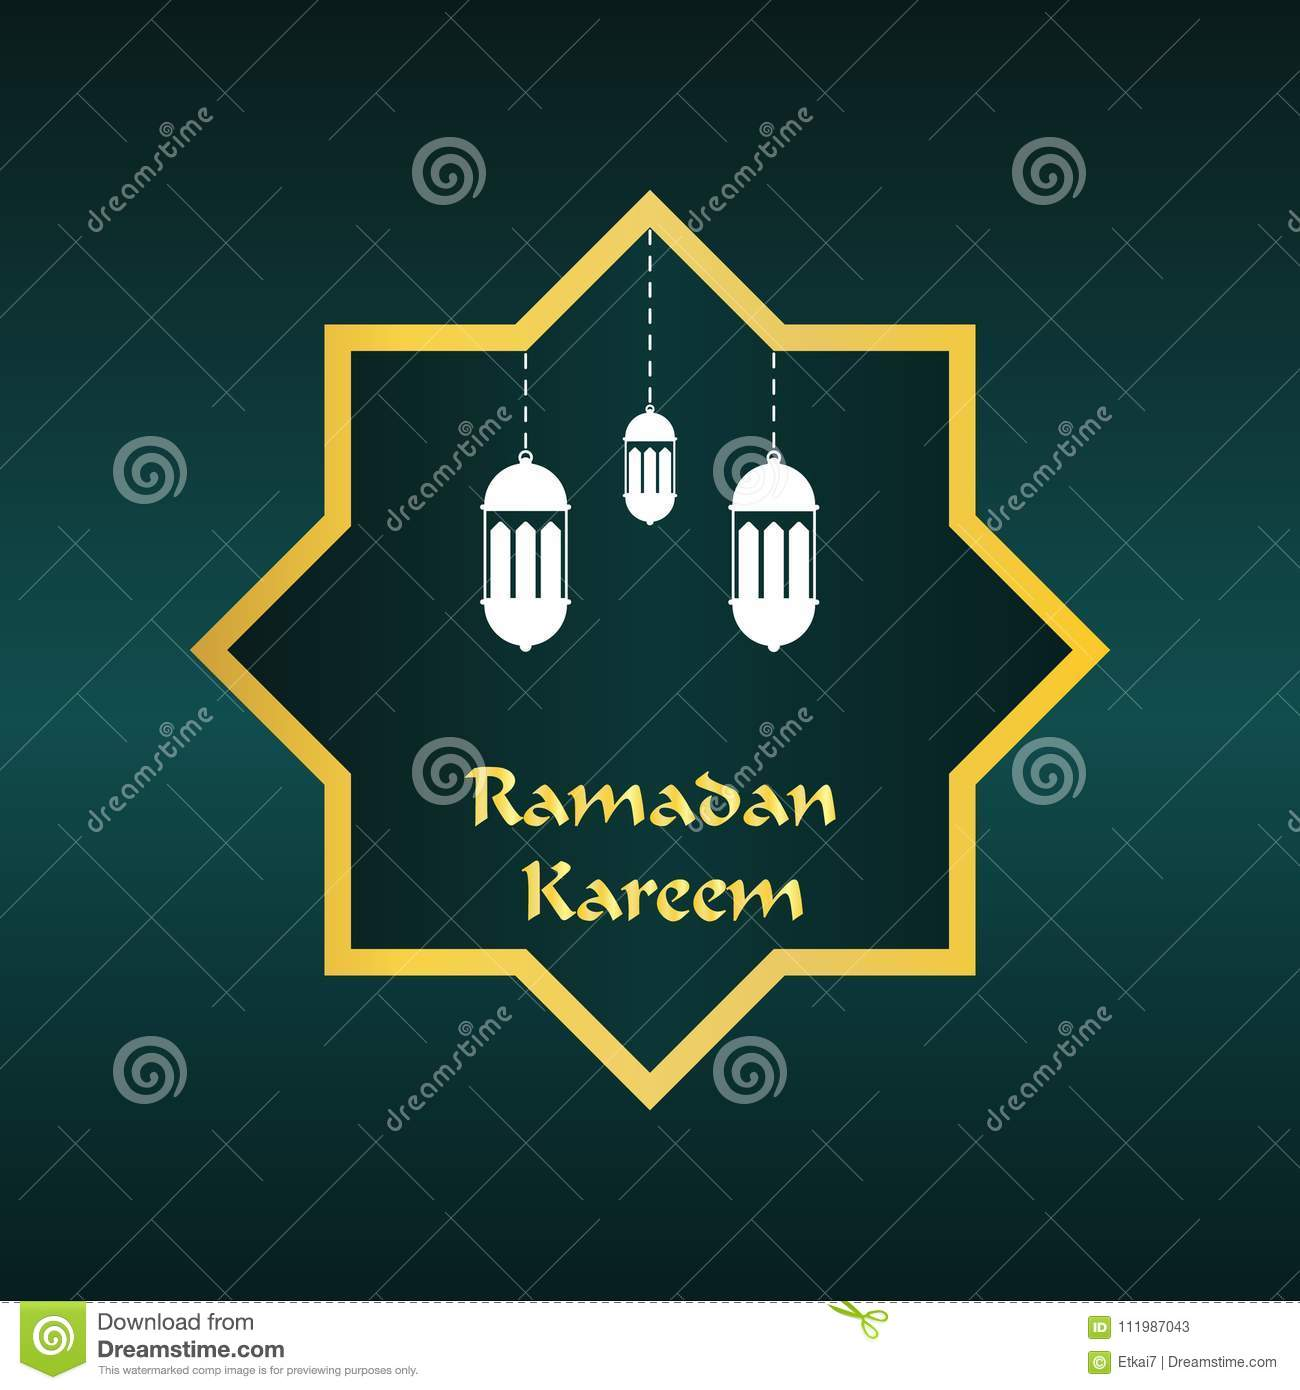 Ramadan Kareem Greeting Card With Islamic Ornaments And Candle V